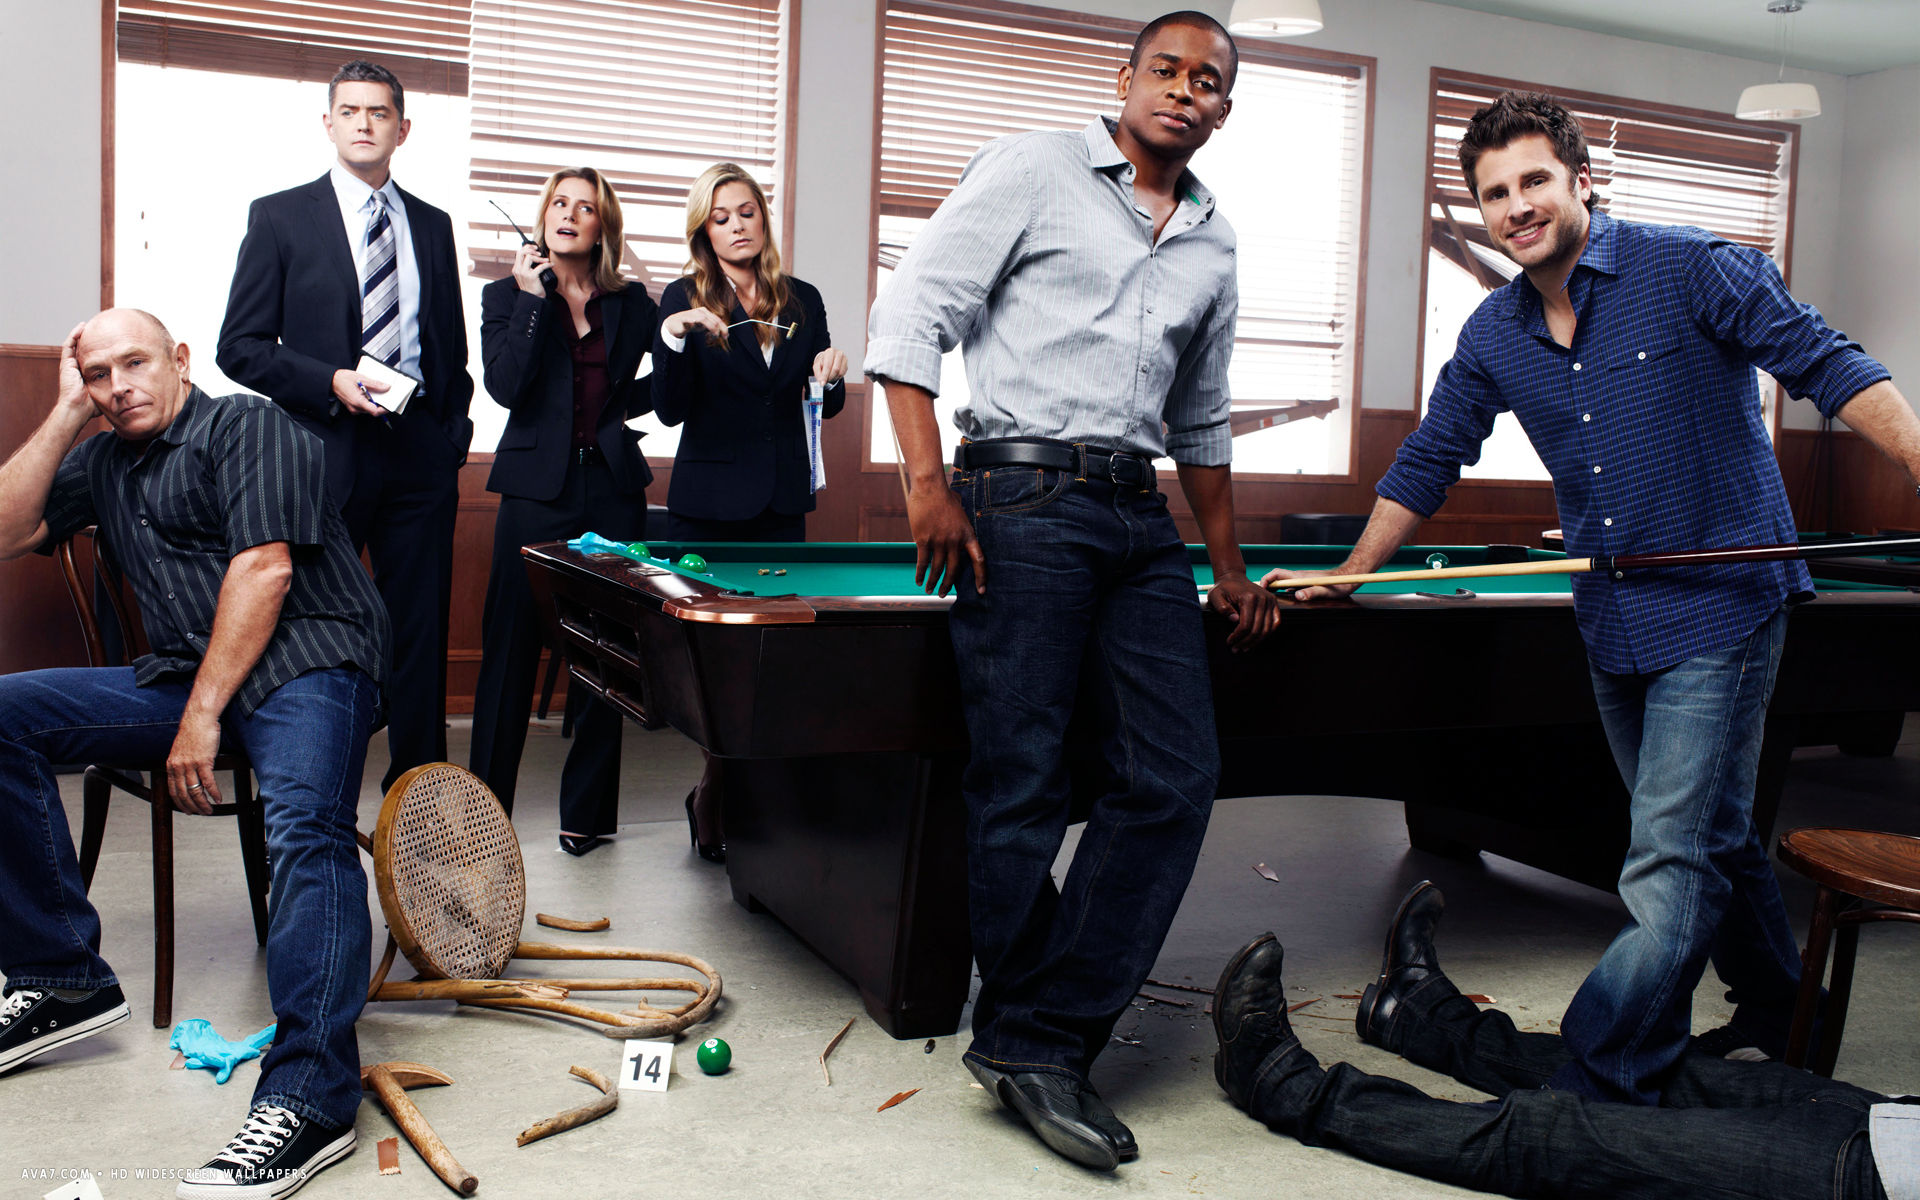 psych tv series show hd widescreen wallpaper